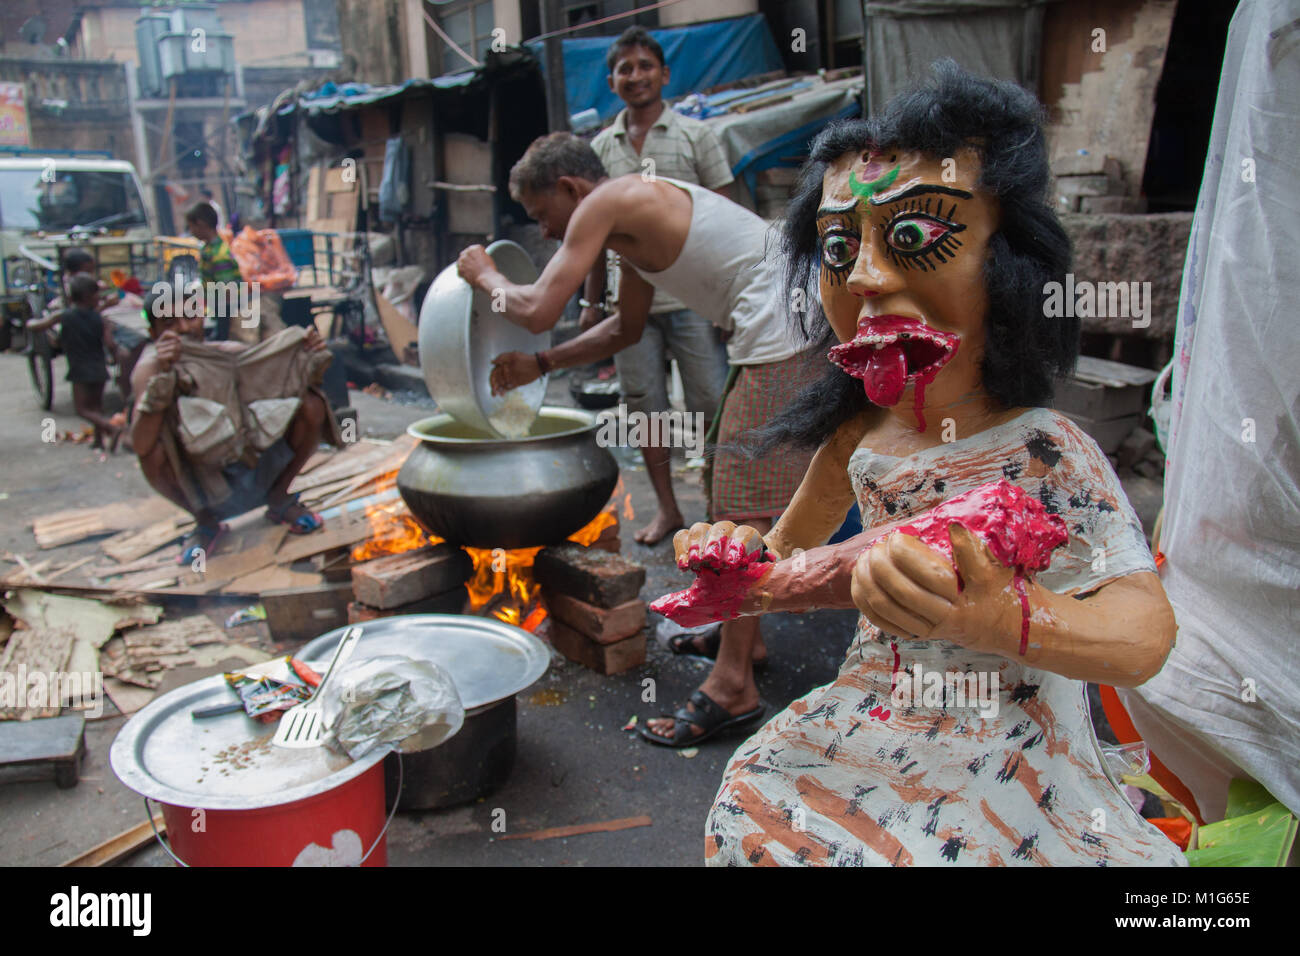 Calcutta / Kolkata street with food vendors next to a gruesome papier mache female model eating what looks like - Stock Image